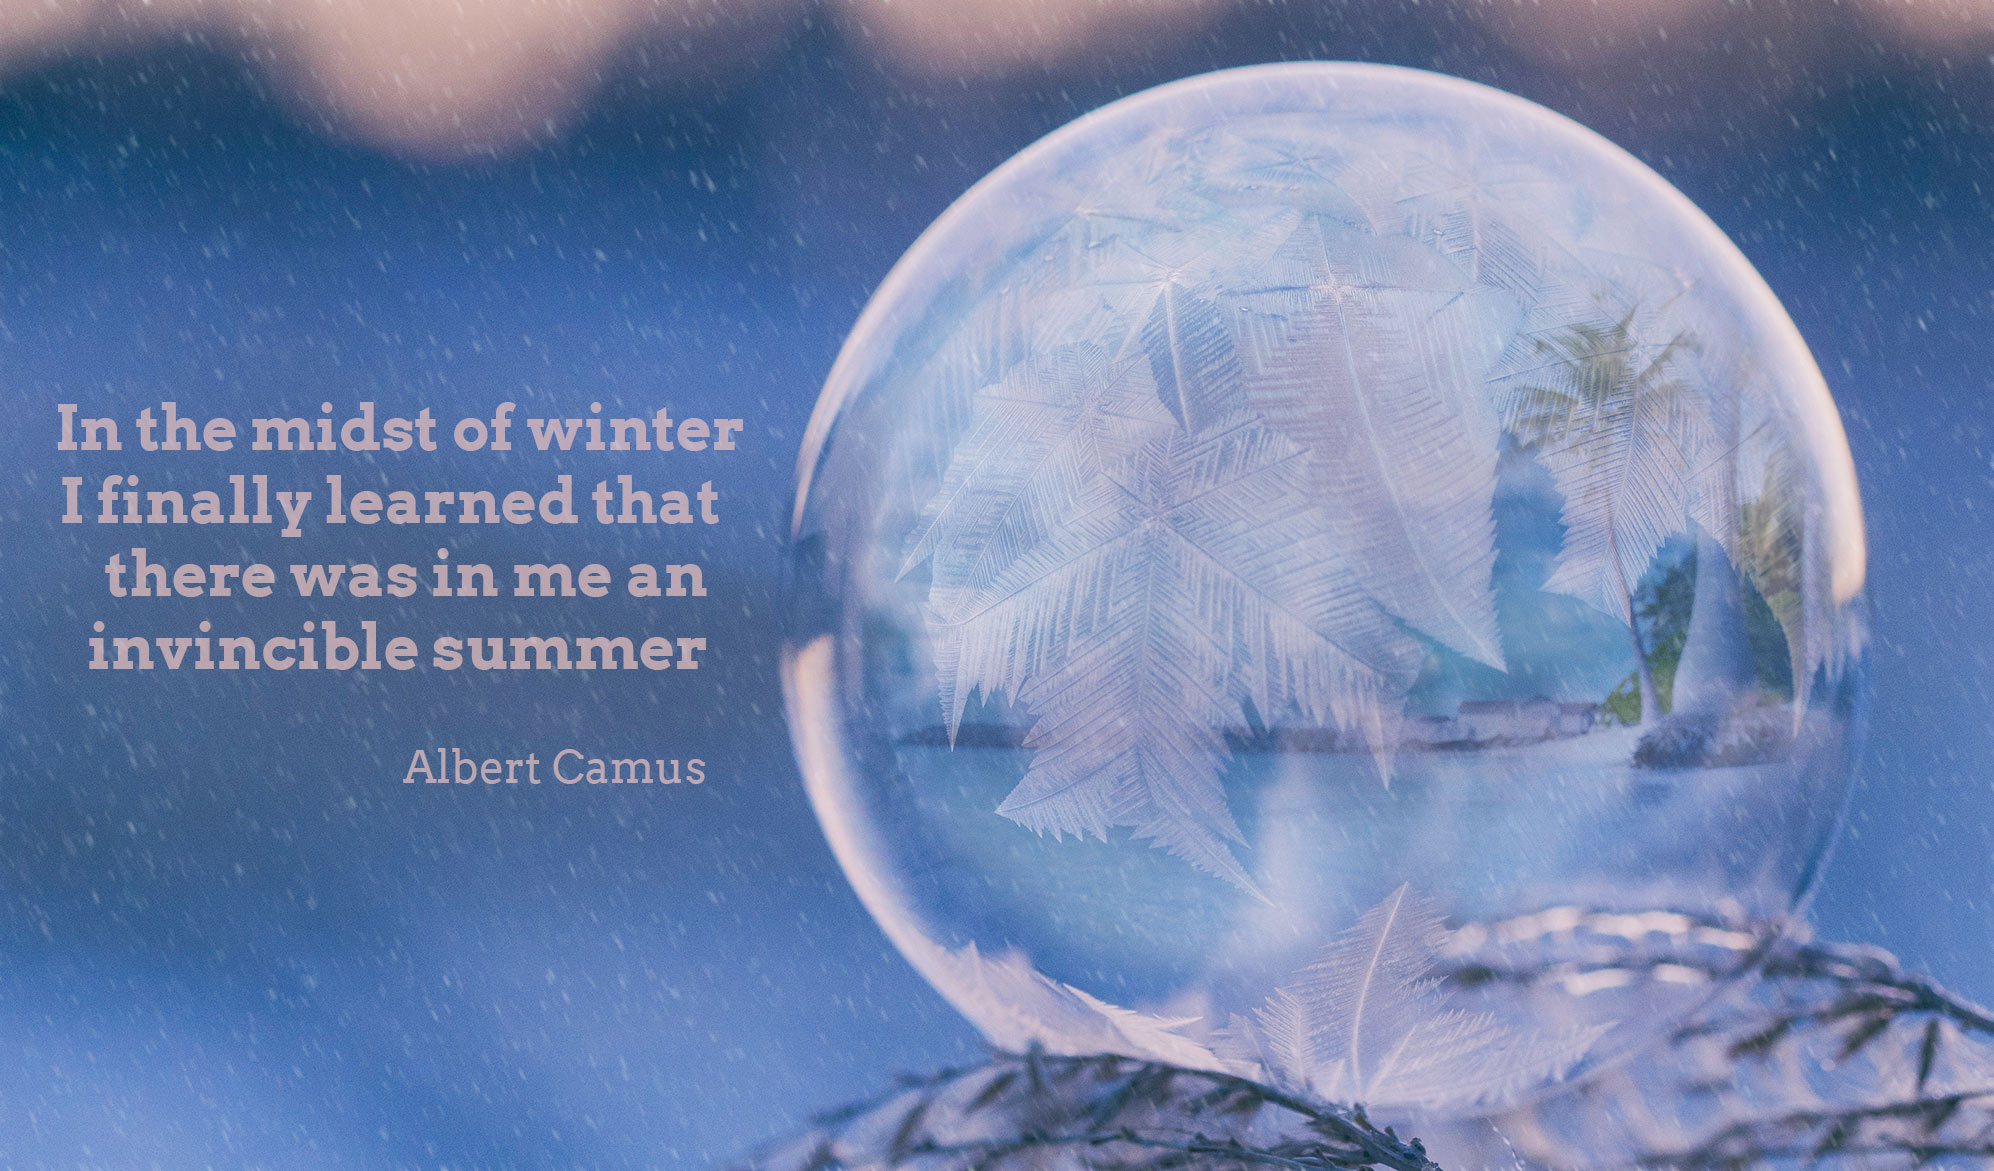 daily inspirational quote image: a frozen globe, reflecting a sunny beach during a snowfall